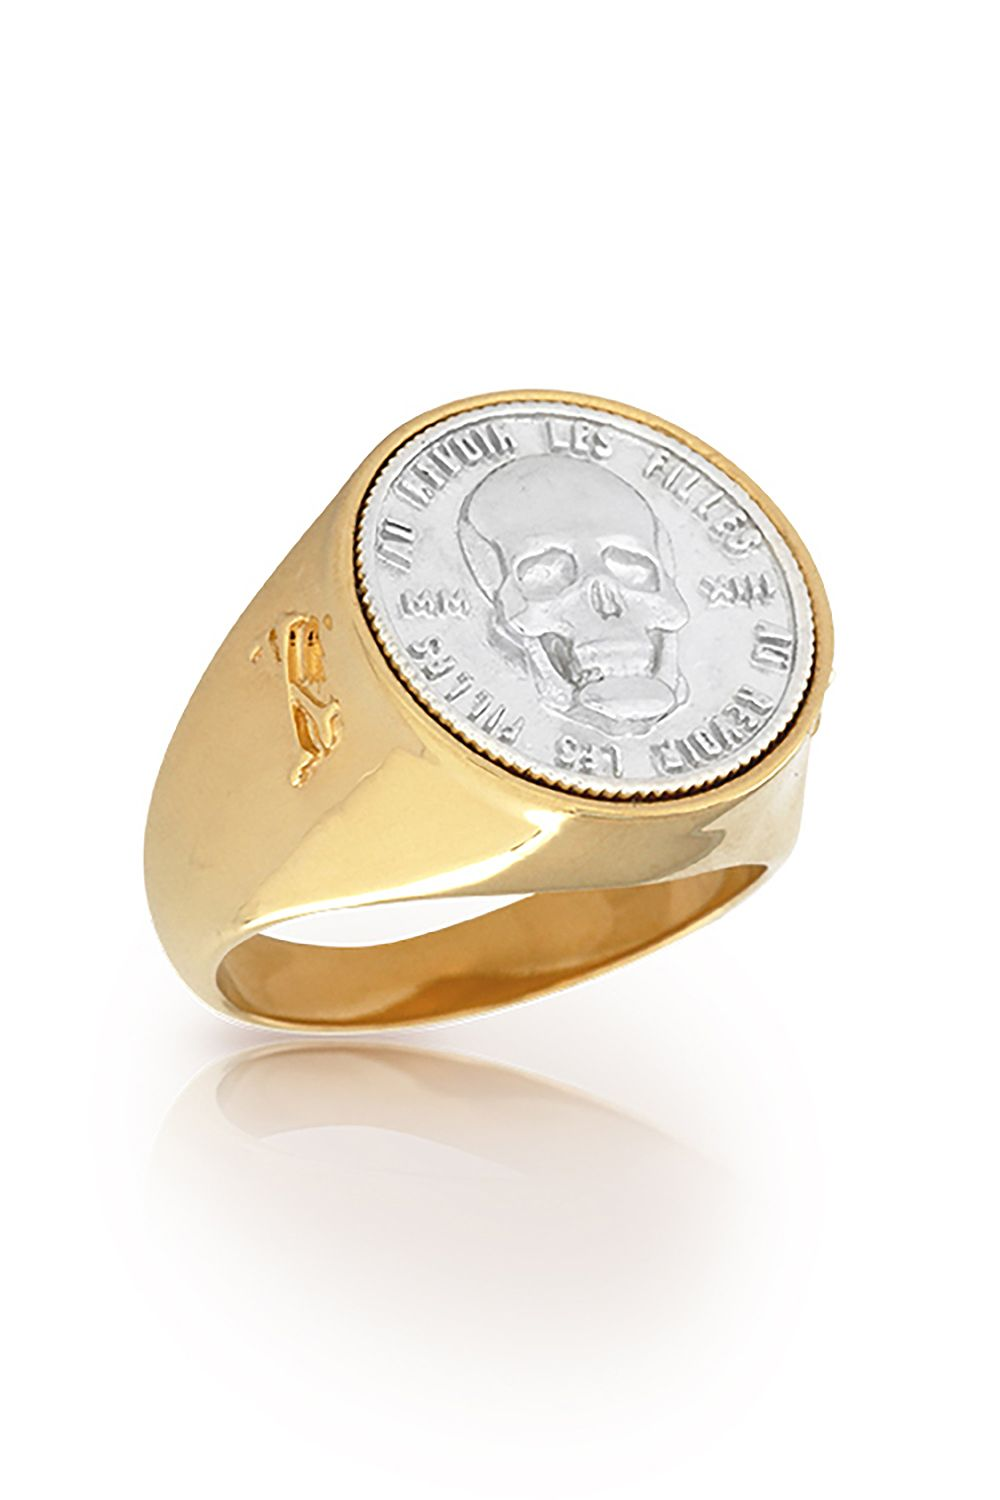 "<p>Nothing like a memento mori to remind you to work better (harder, faster, stronger) because life is short, and the afterlife is forever, maybe.  </p><p>$213, <a href=""http://www.aurevoirlesfilles.com/shop/eternal-signet-ring-ii"" target=""_blank"">aurevoirlesfilles.com</a>.</p>"